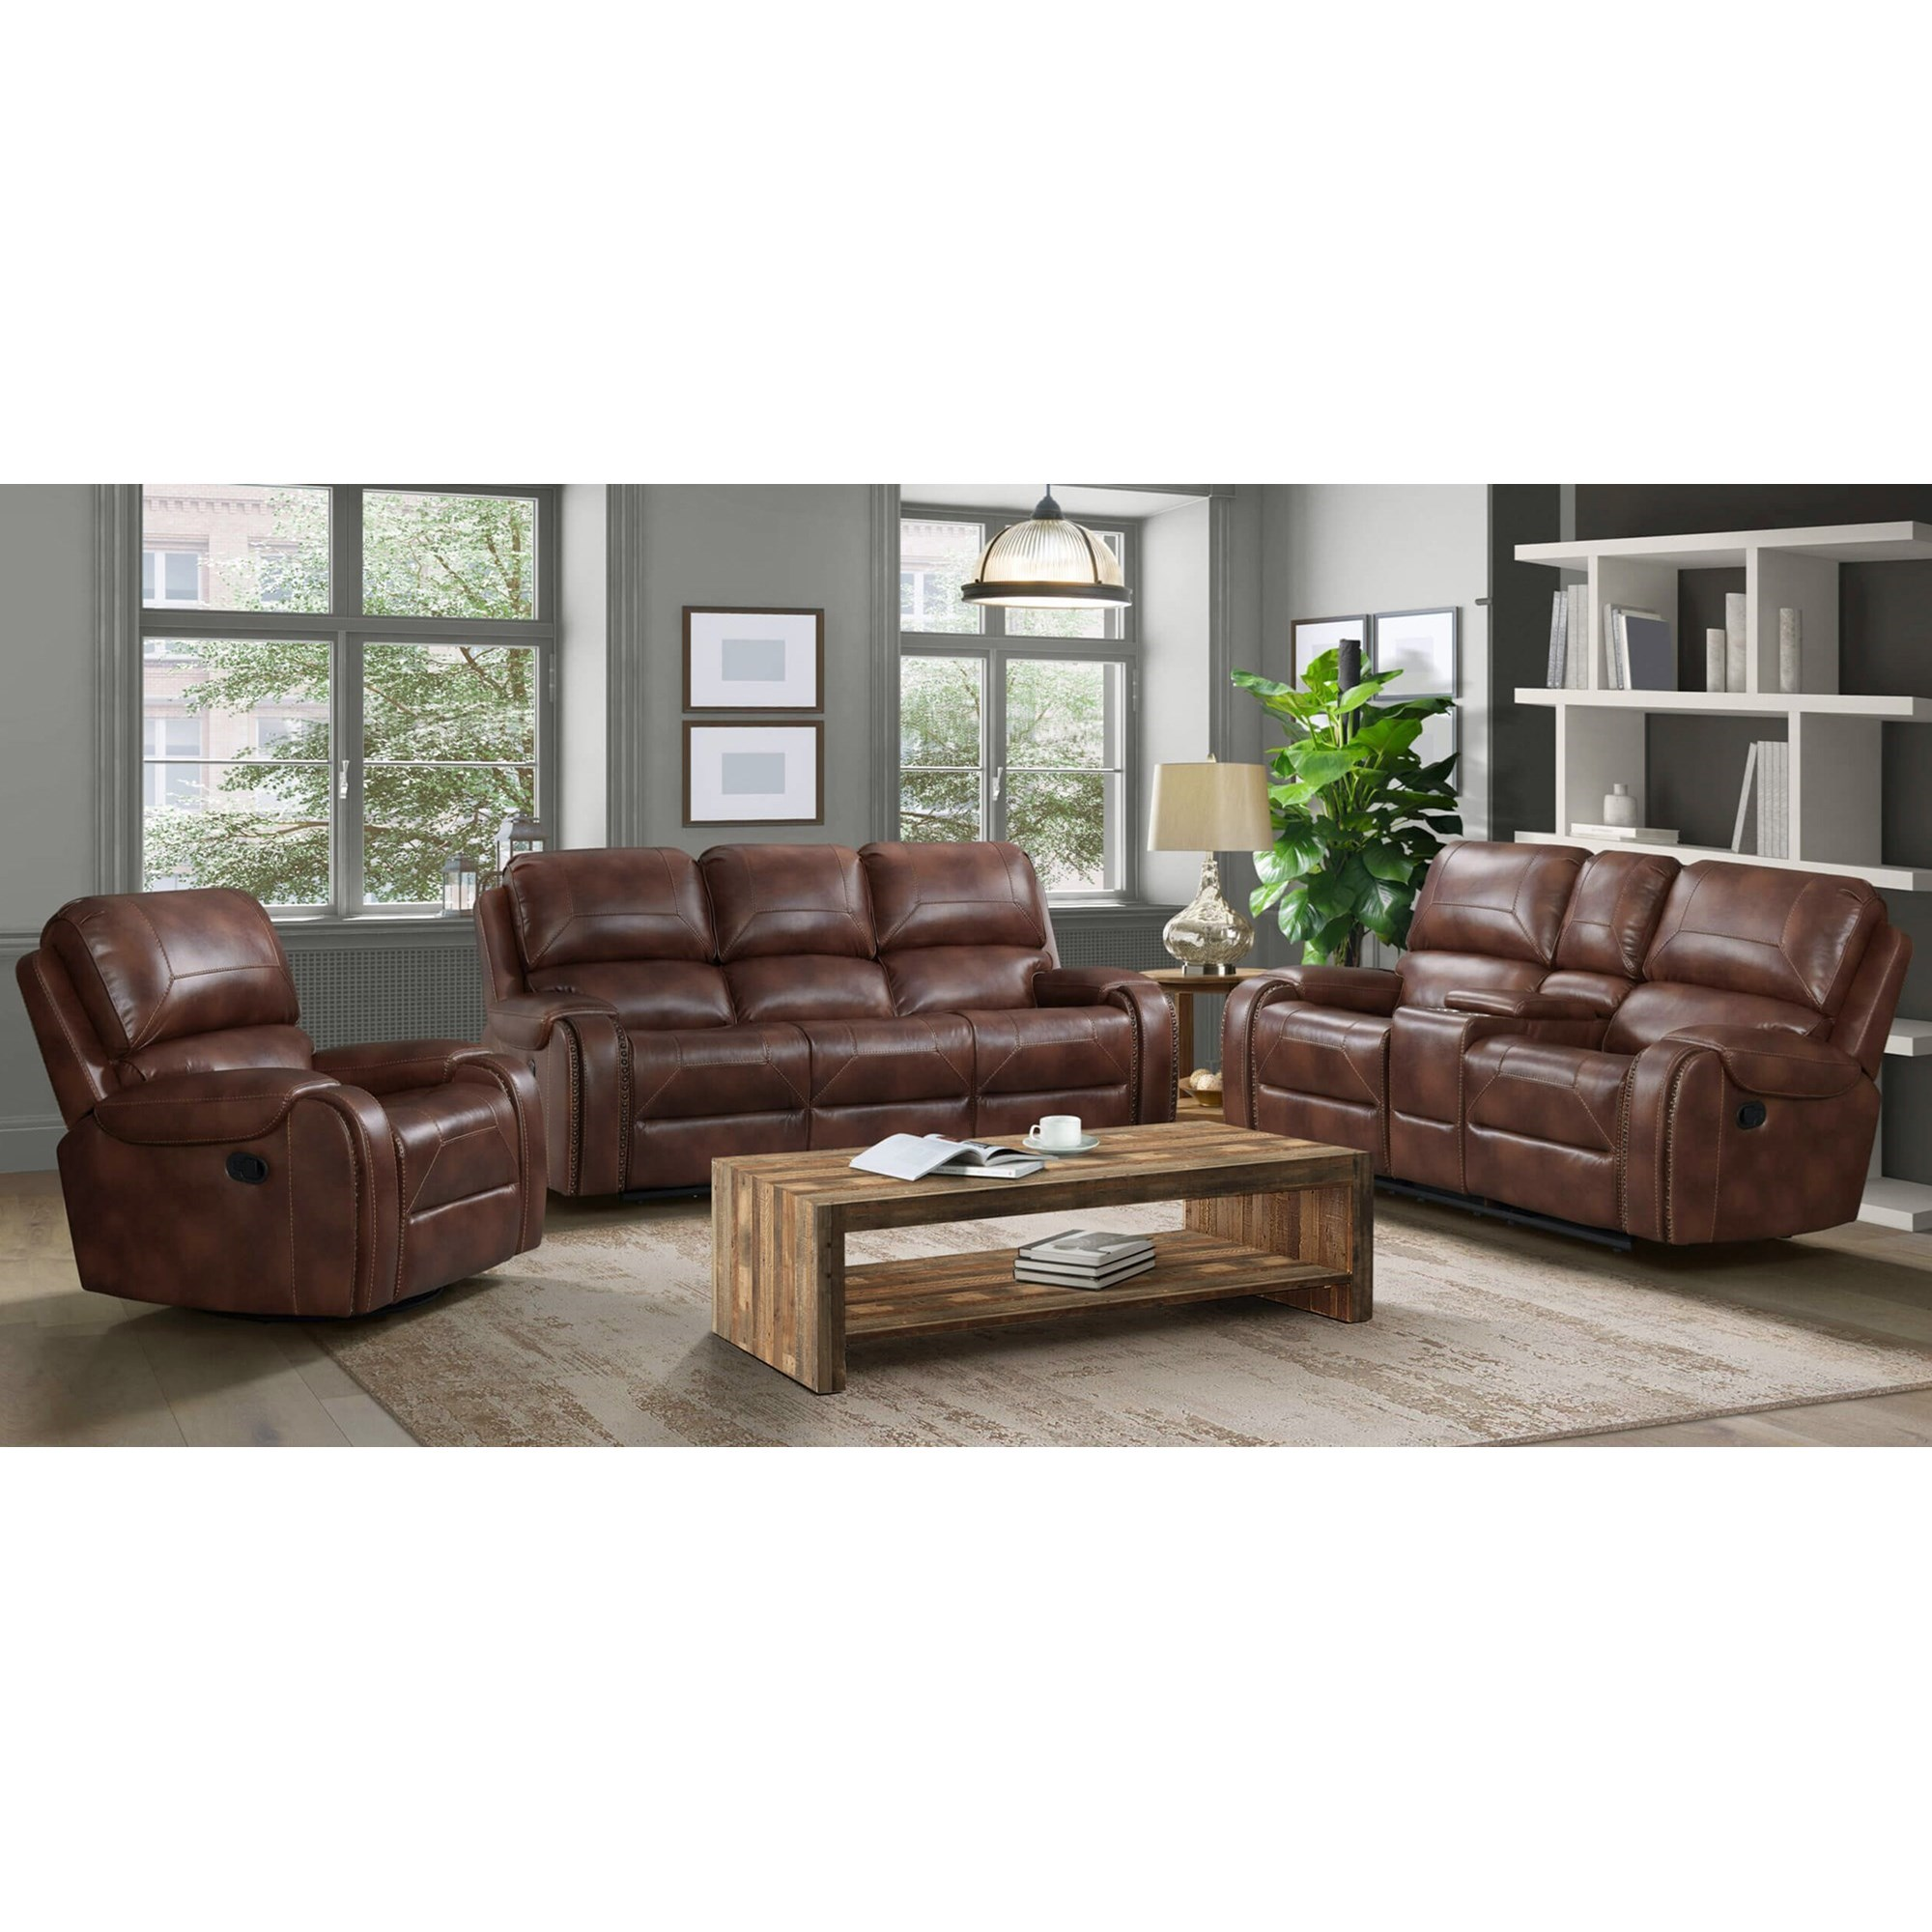 59931 Power Reclining Living Room Group by Lane at Powell's Furniture and Mattress